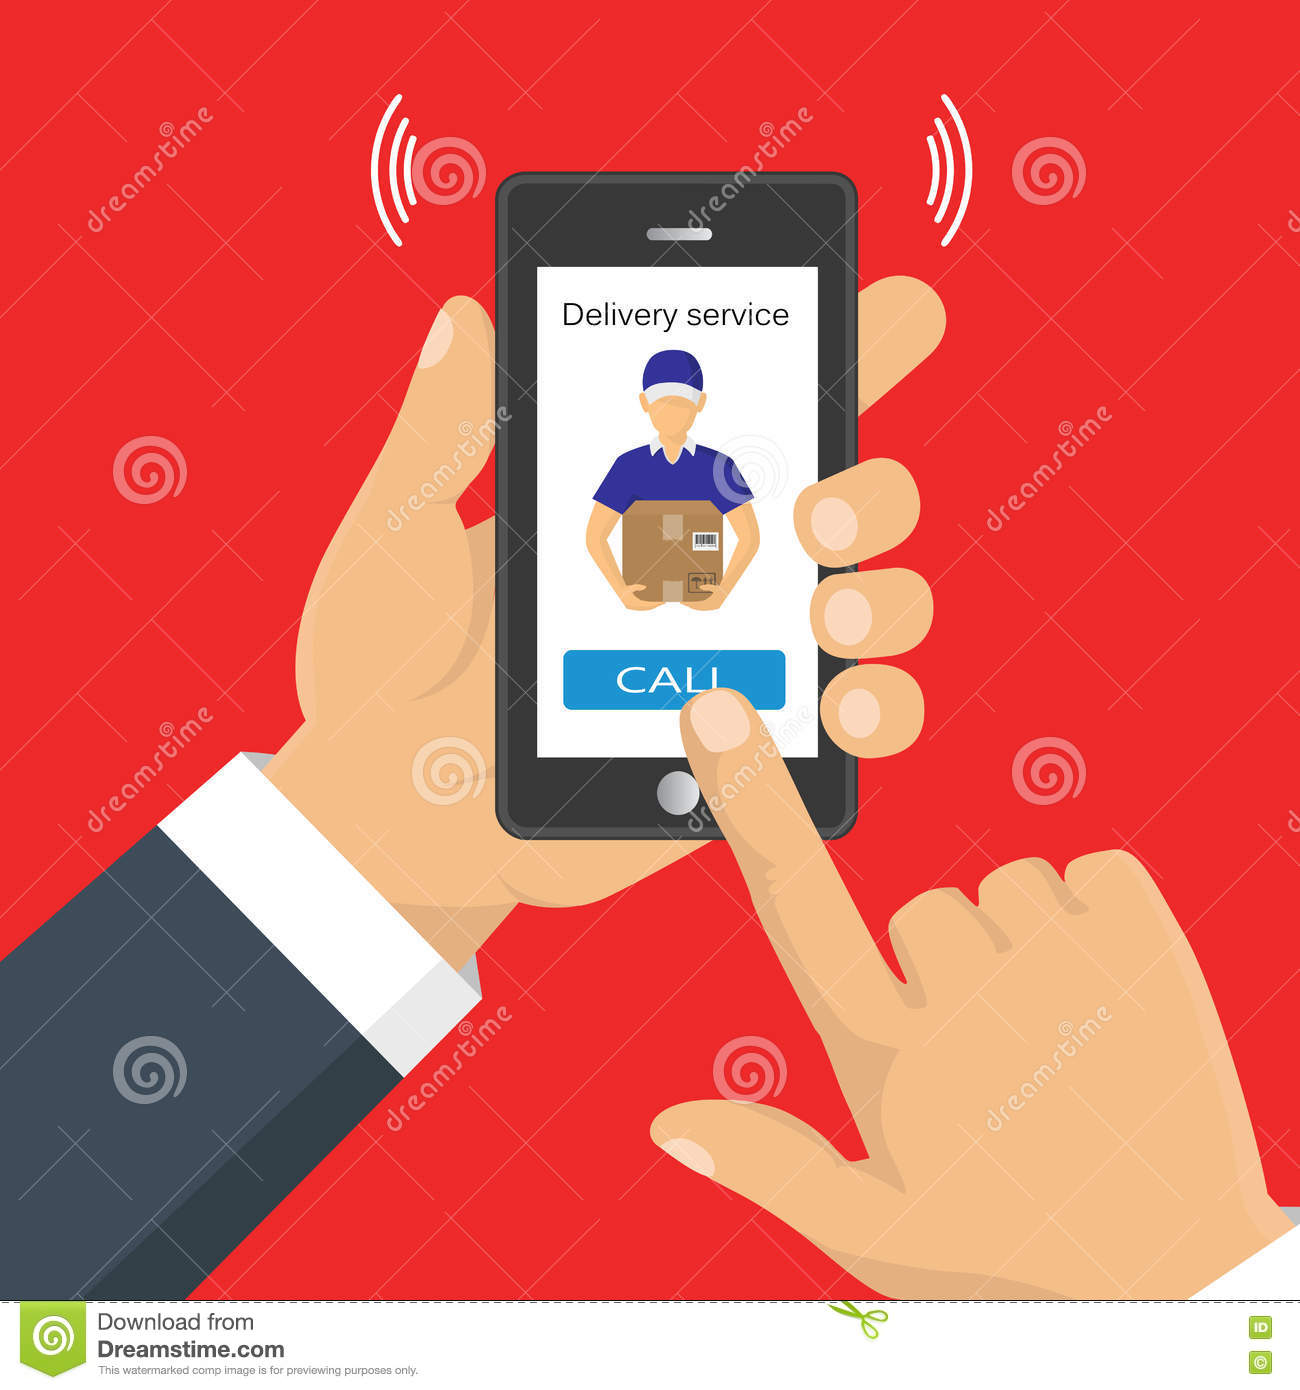 Hand Holding A Phone, Calling In Service Delivery  Stock Vector